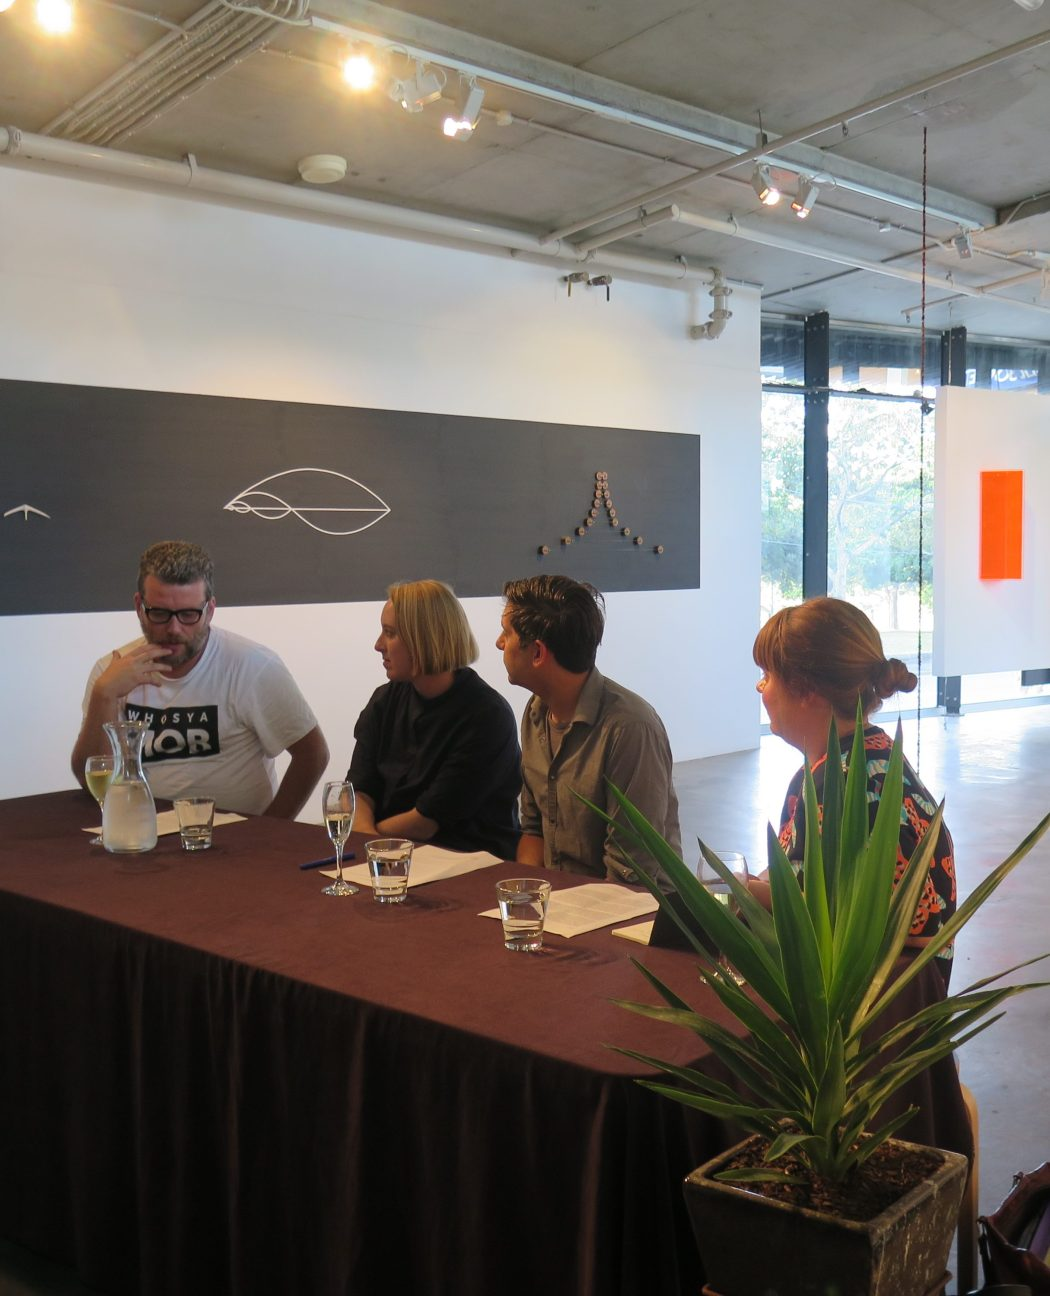 Indigenising the white cube : rethinking curatorial practices // Chaired by Stephen Gilchrist, panelists LtoR Sebastian Goldspink, Emma Pike, Stephen Gilchrist and Emily McDaniel.